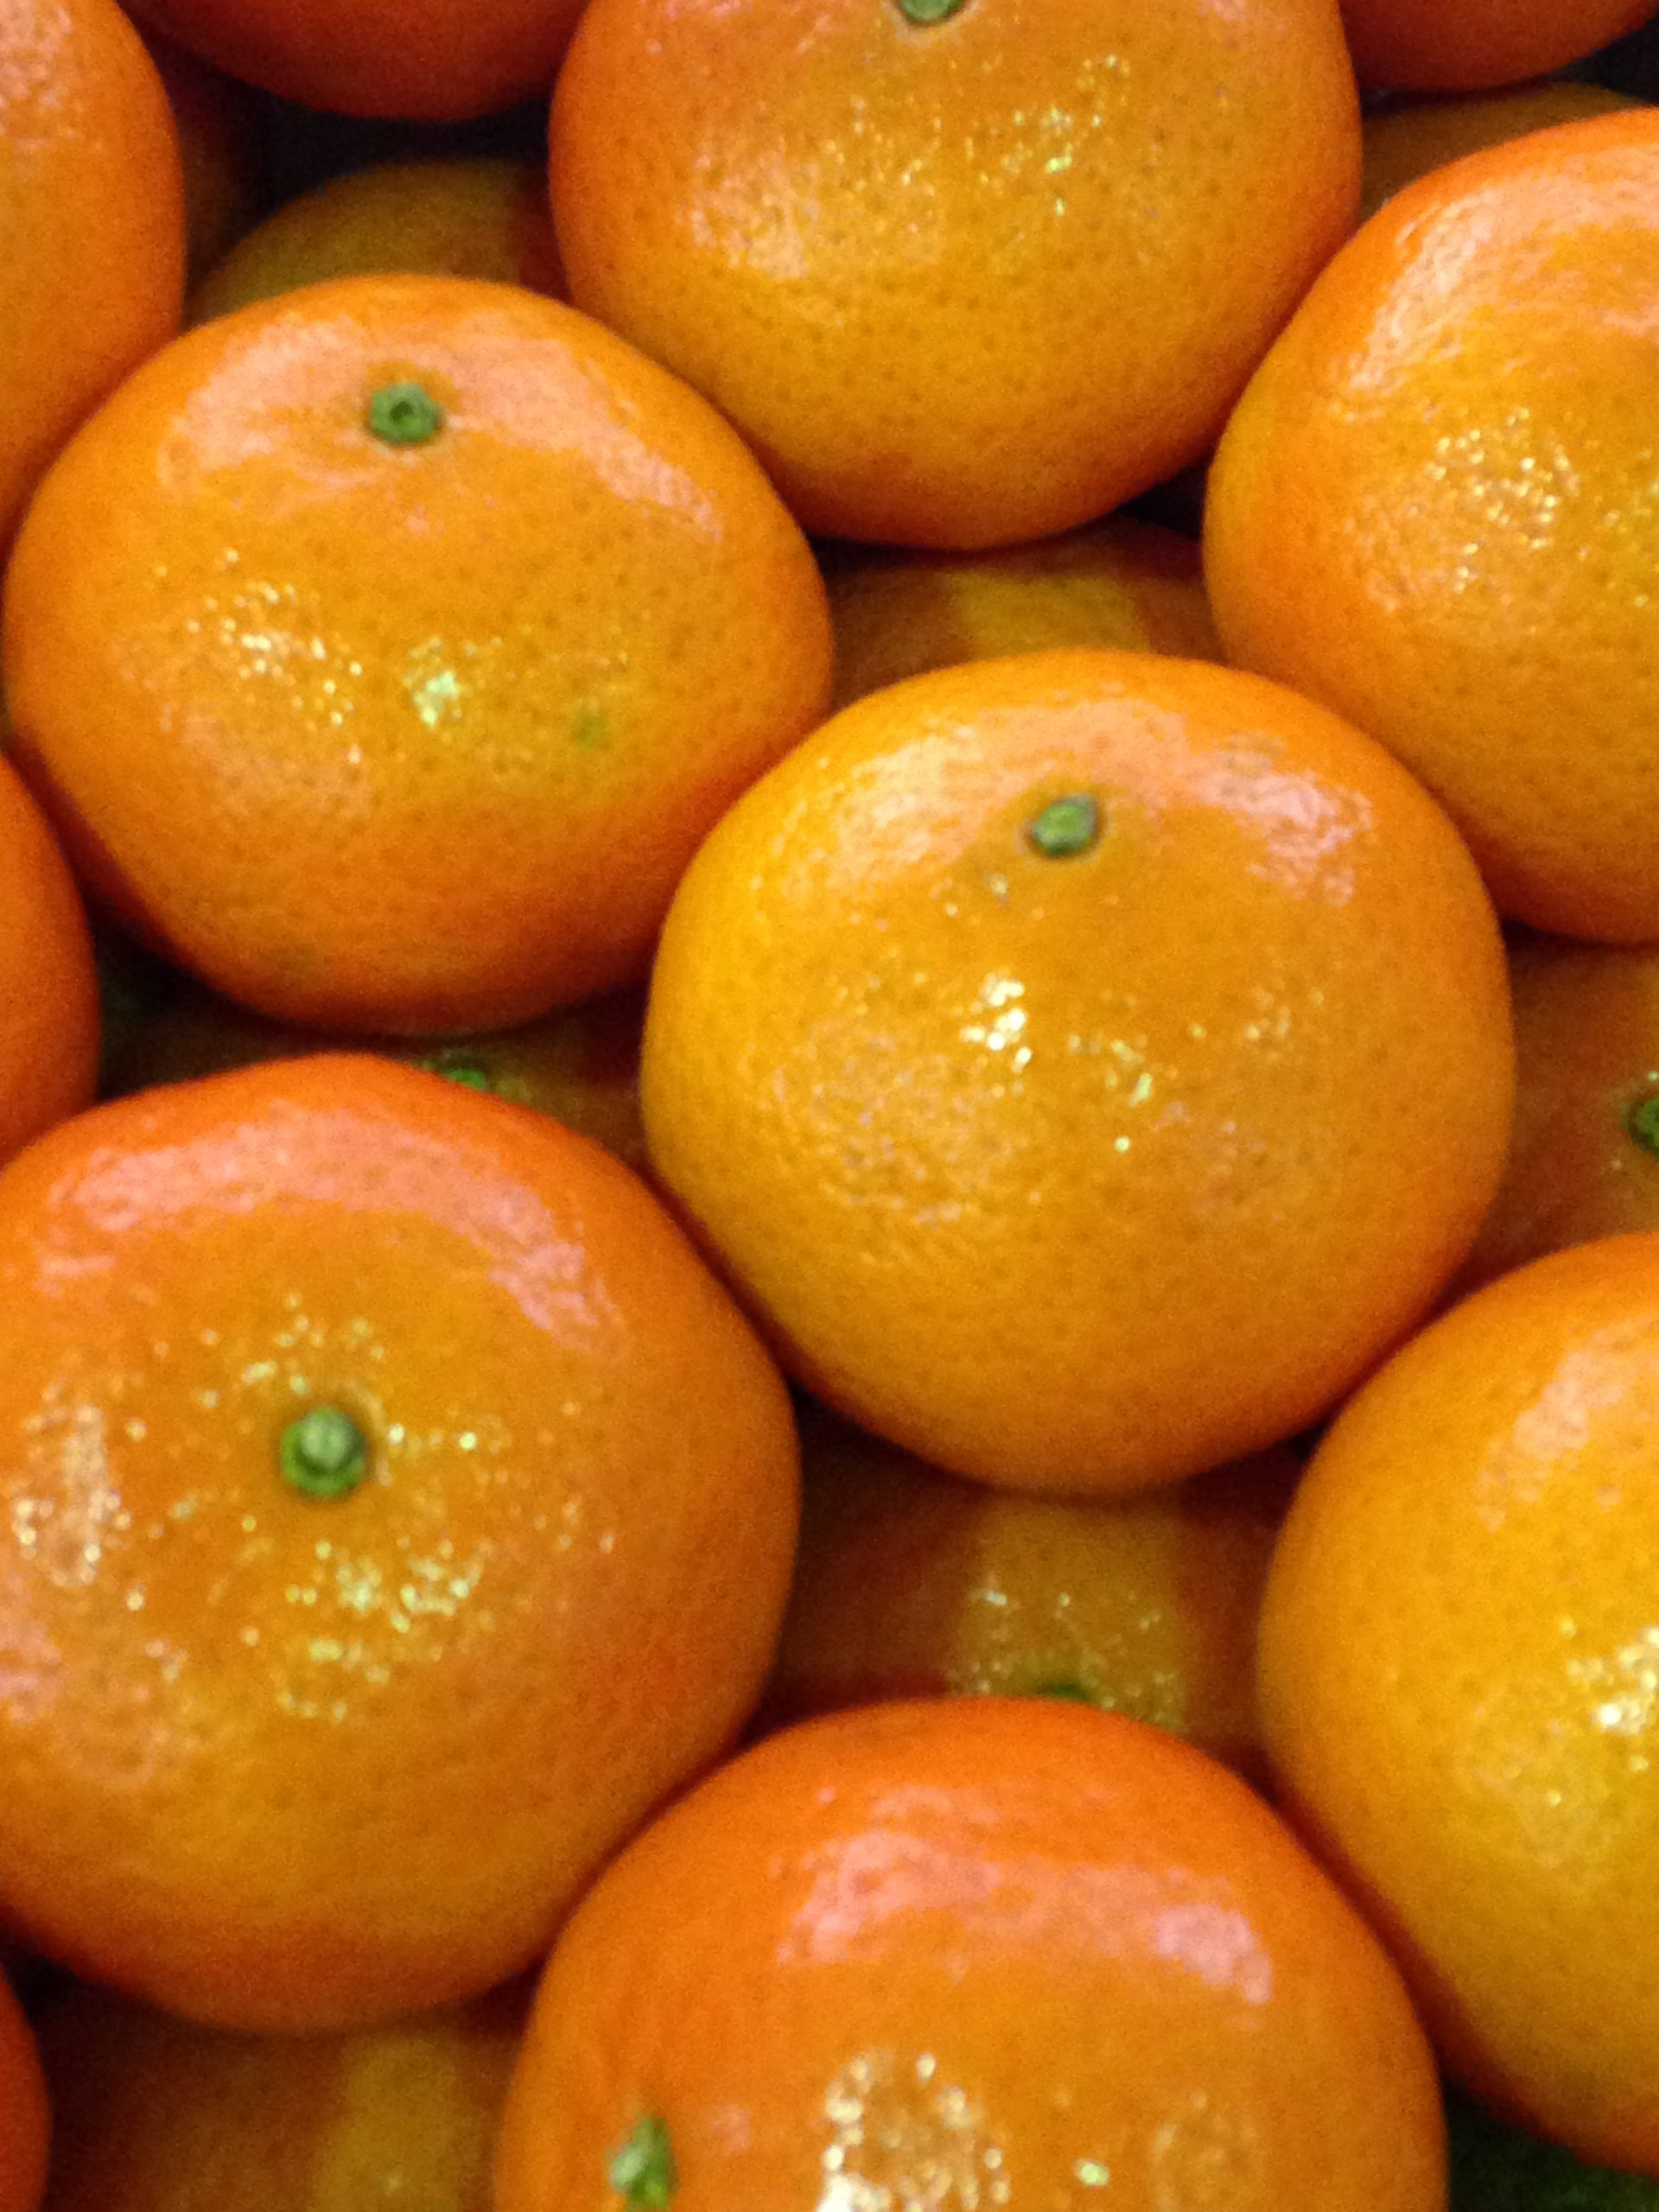 Citrus fruit from the entire country of Peru could be imported into the continental United States under a change proposed by the U.S. Department of Agriculture's Animal and Plant Health Inspection Services (APHIS).